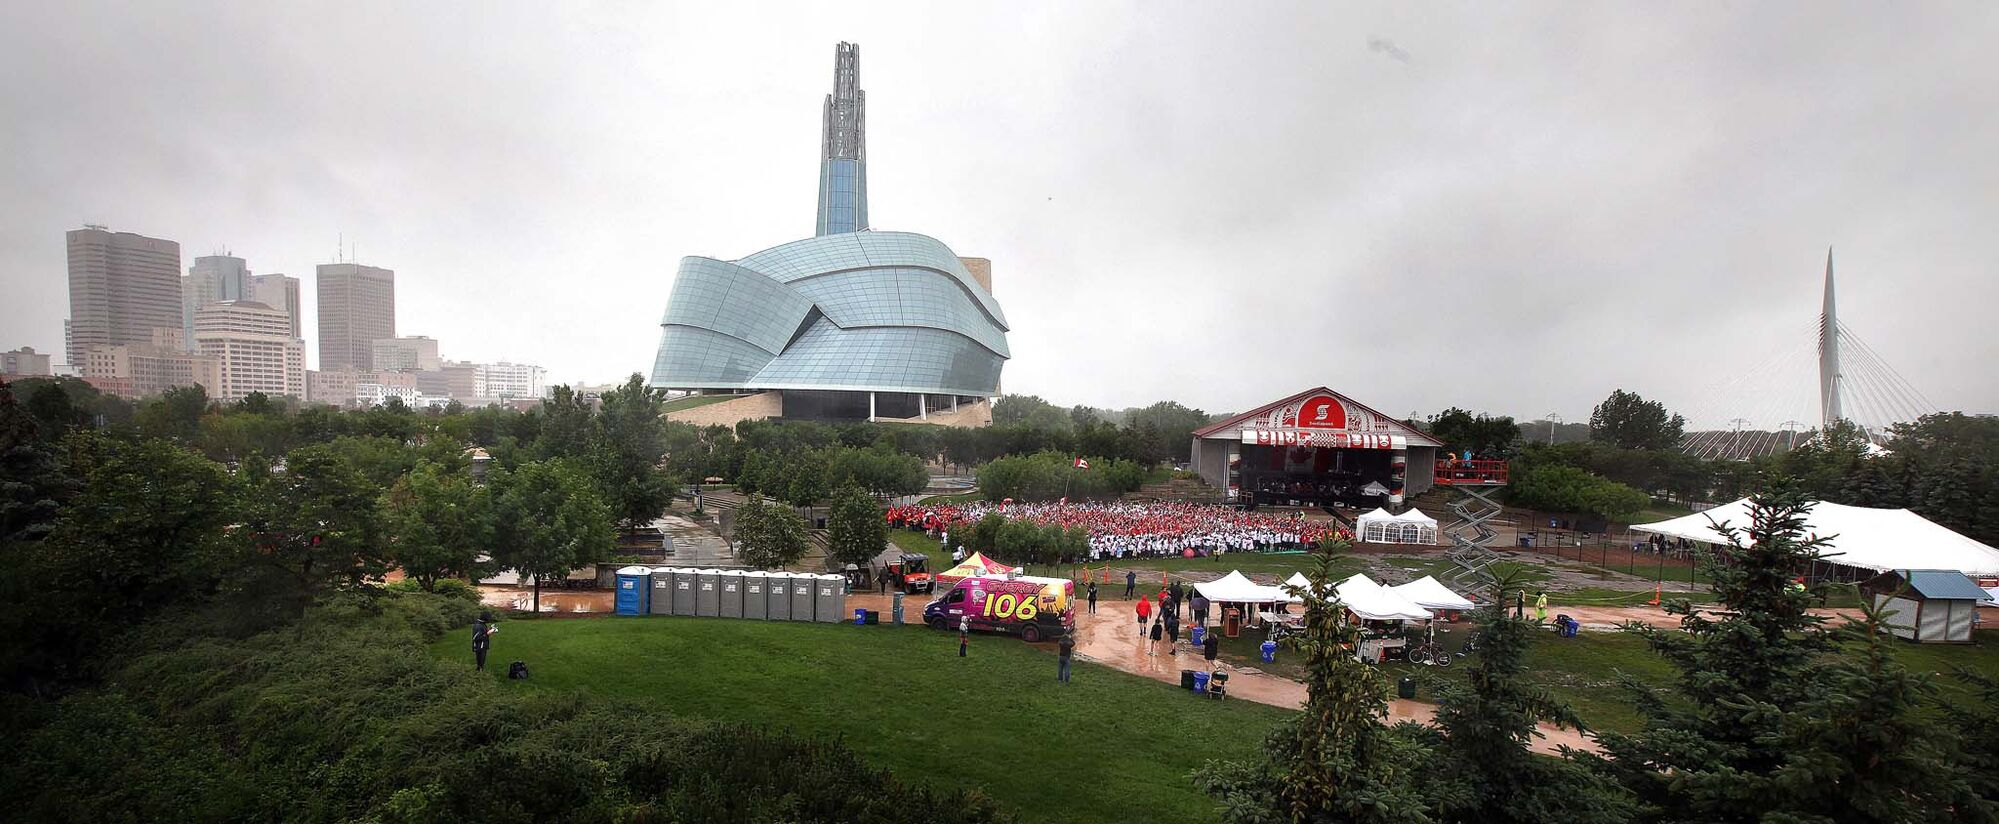 Nestled in the greenery of the Forks and with the city skyline as a backdrop,  a human flag is formed despite the weather at the Forks Tuesday.